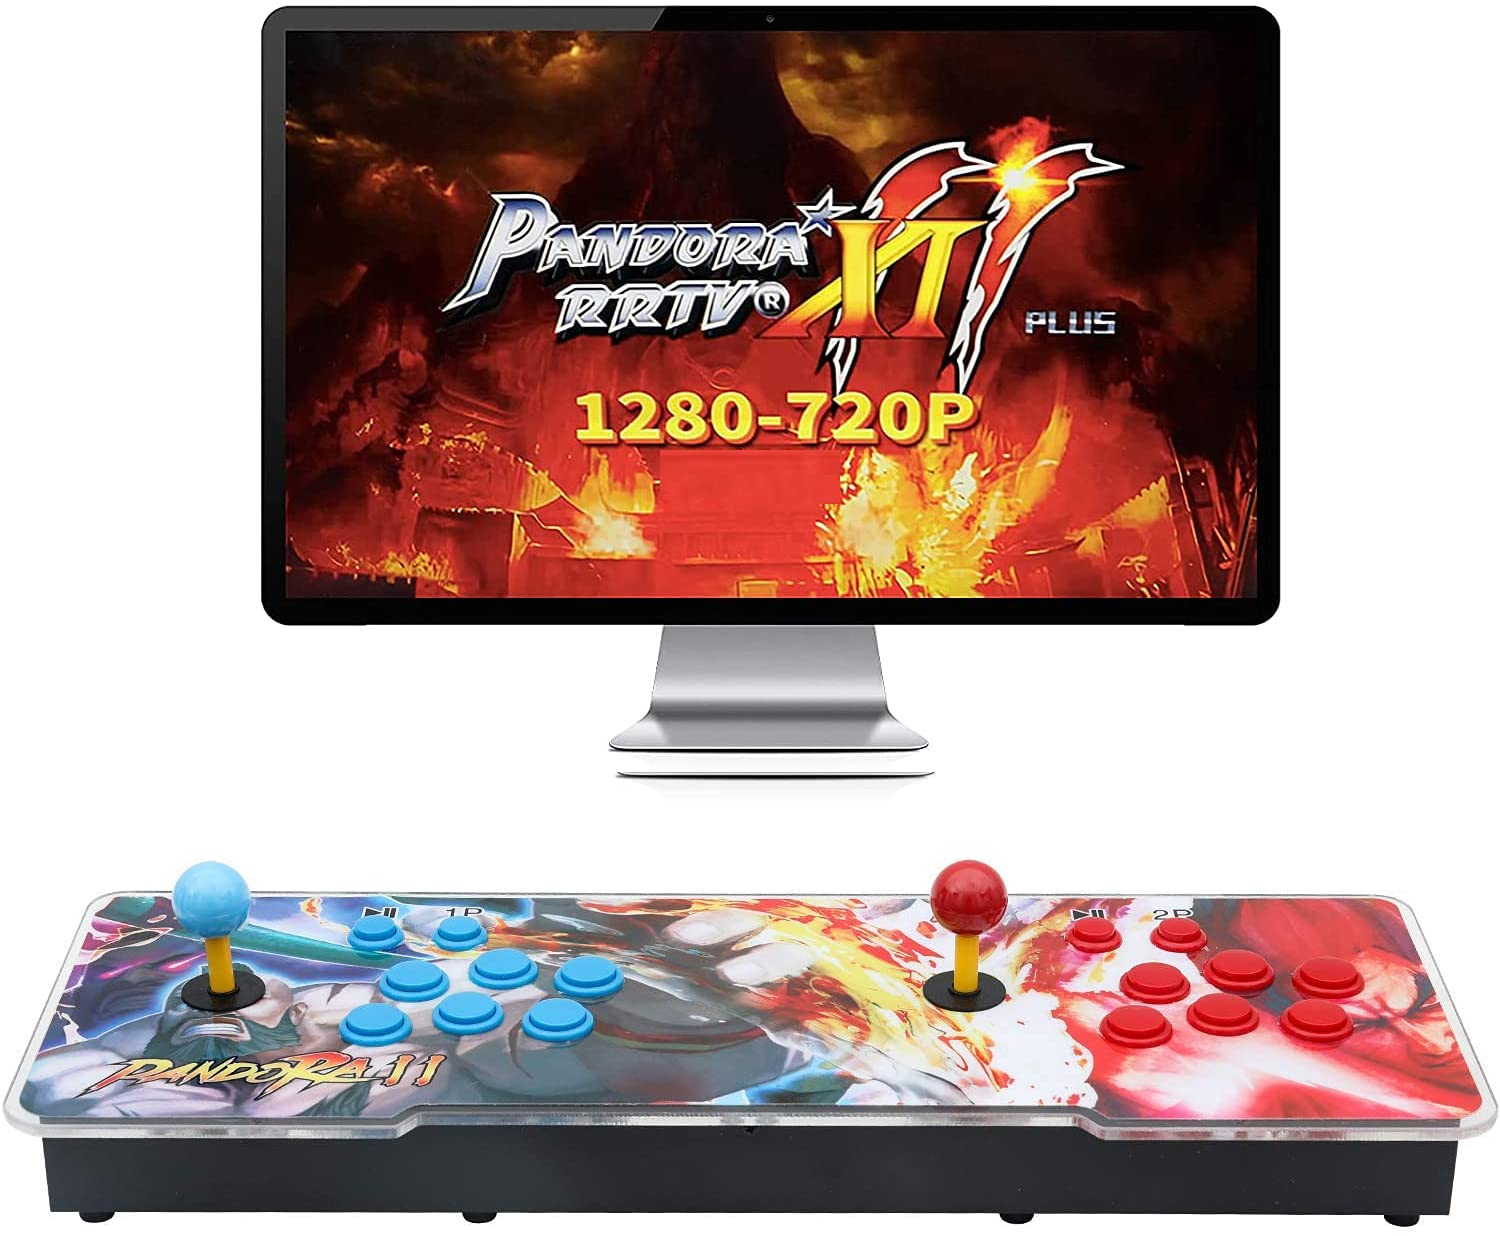 【3003 Games in 1】 Limited price Arcade Selling rankings Game D Treasure Pandora Console 3D